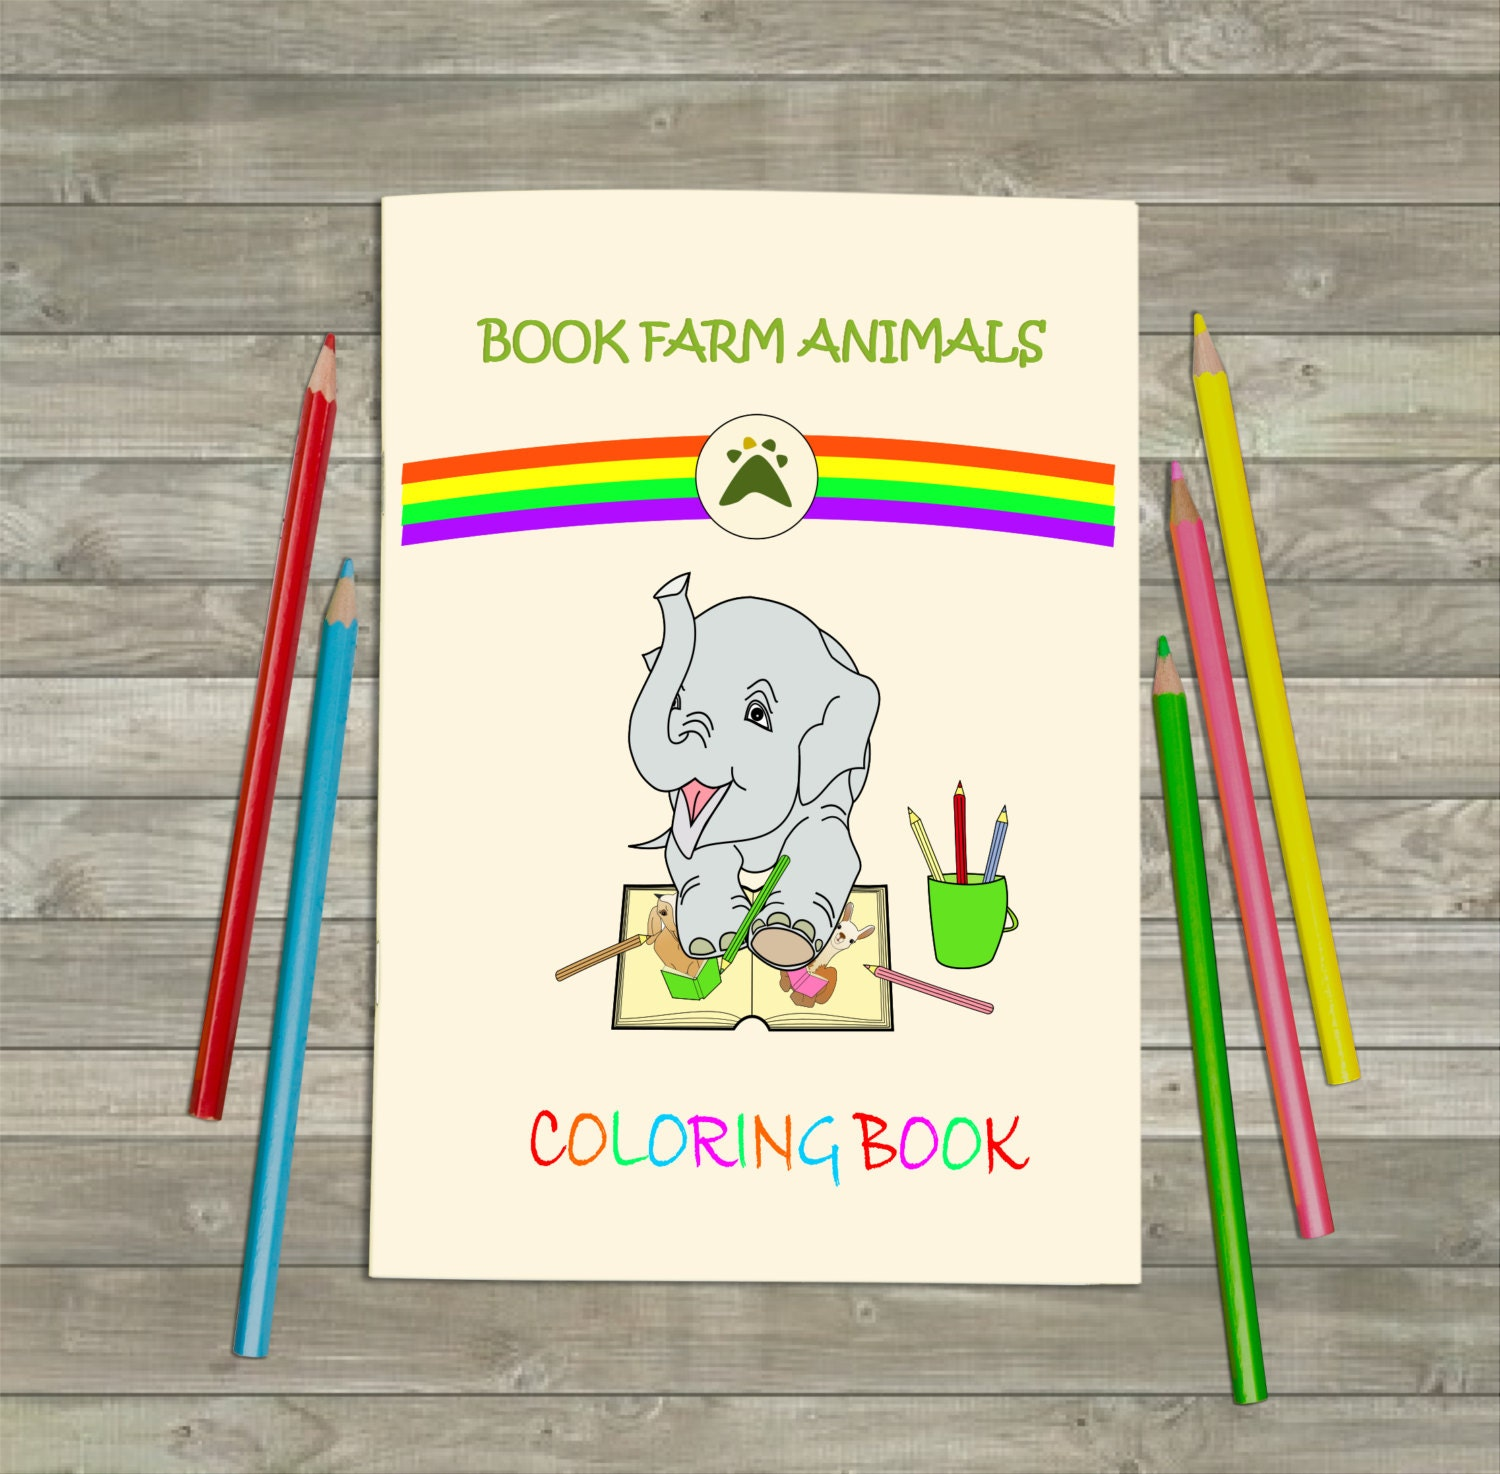 Book Farm Animals Colouring Book Kids Coloring Kids Activity Colouring In Children Coloring Wedding Kids Coloring Book Travel Kids